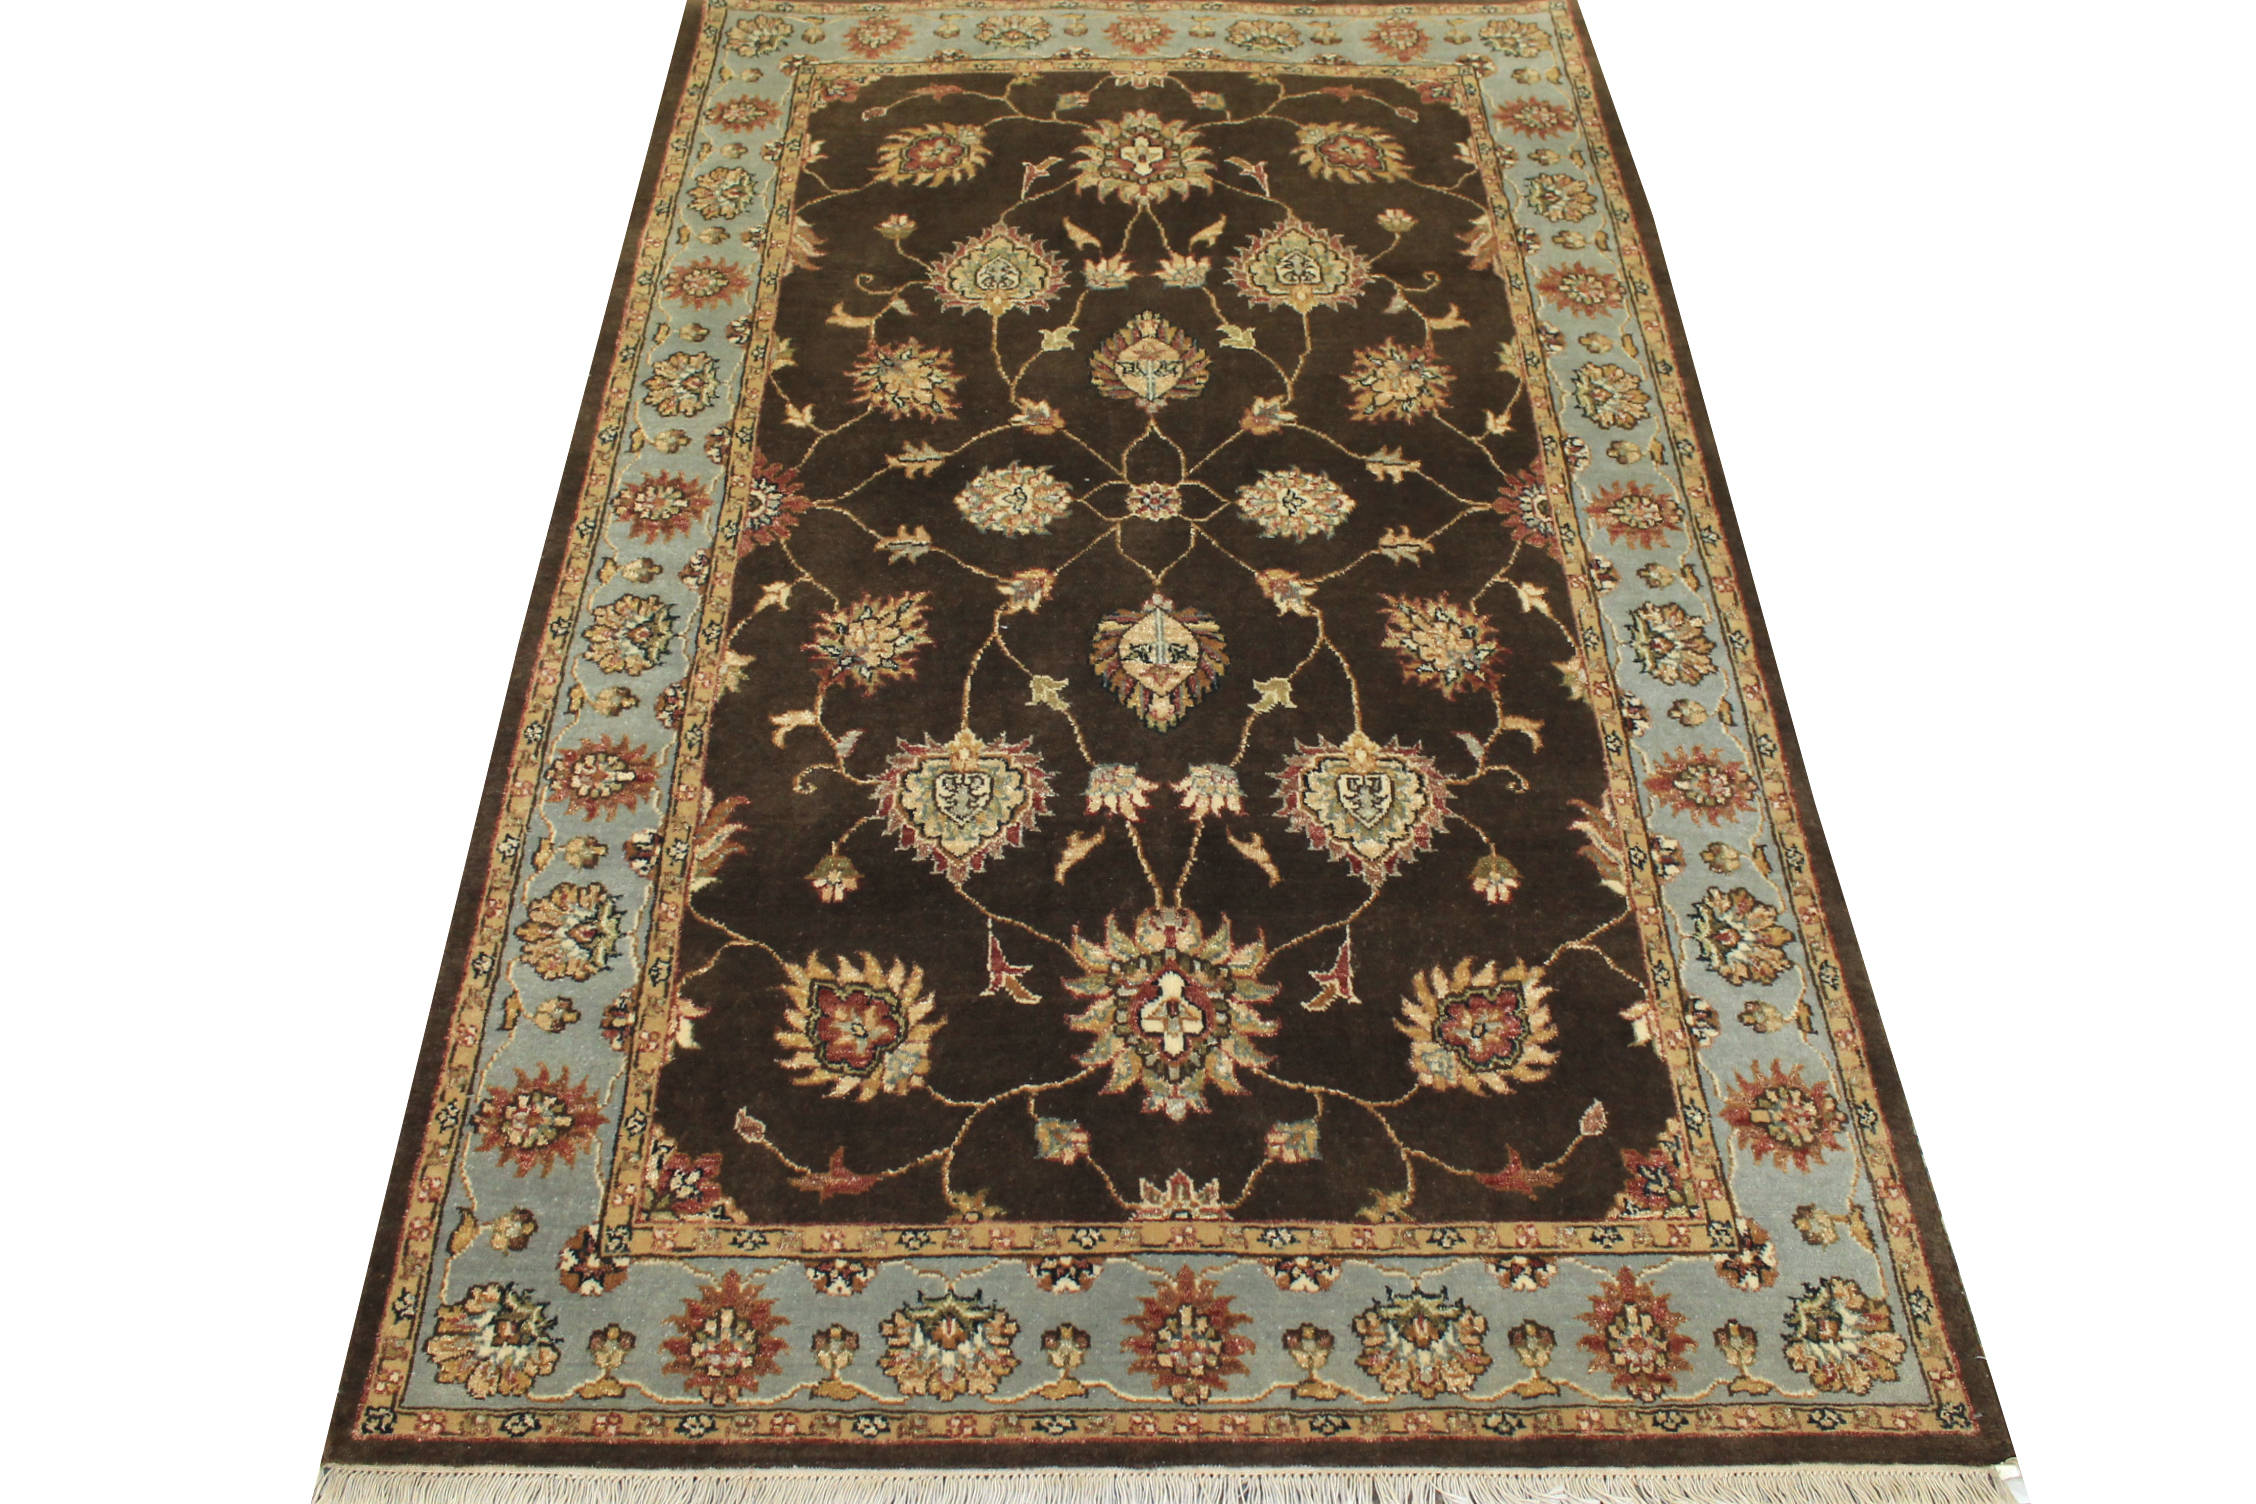 4x6 Traditional Hand Knotted Wool Area Rug - MR12237